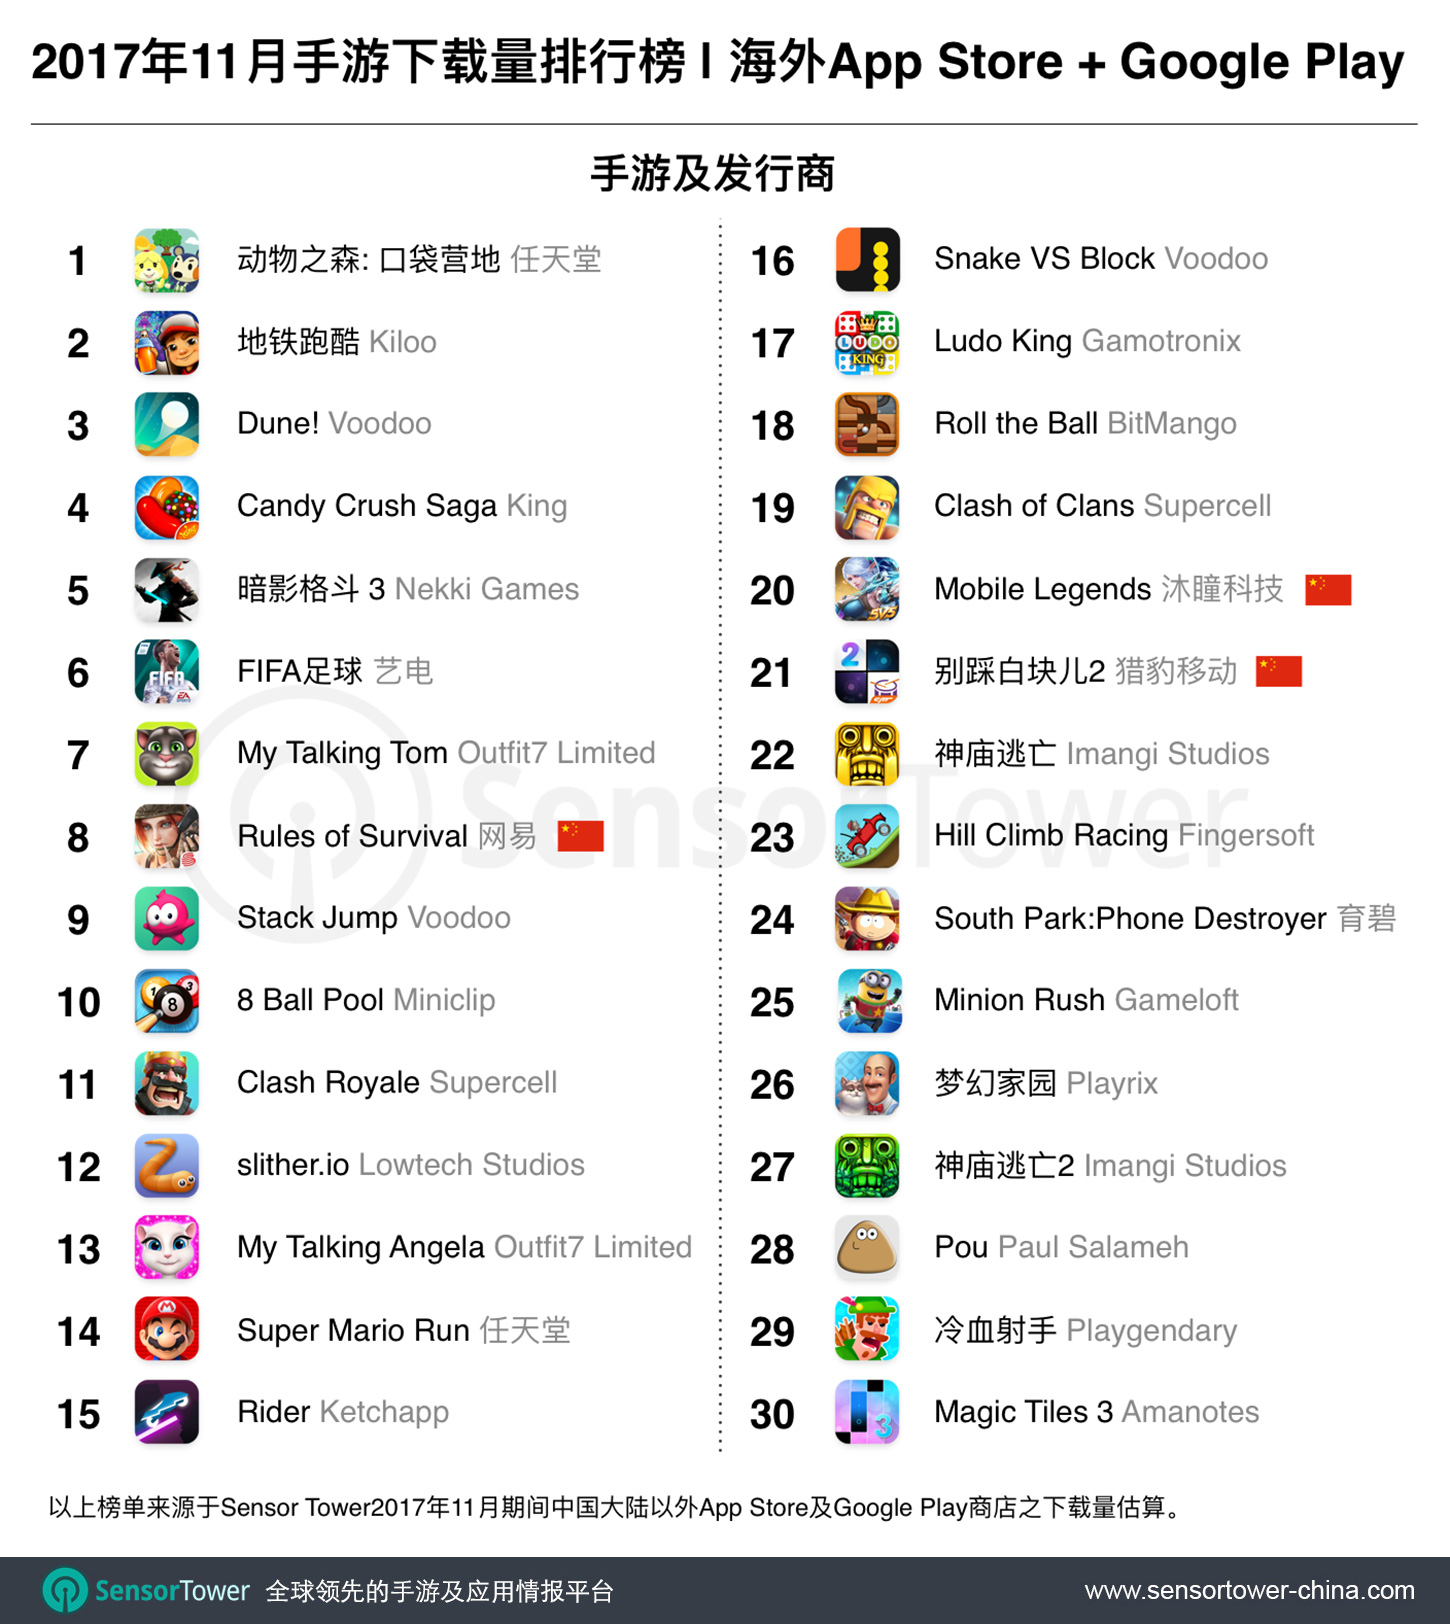 Nov 2017 Top 30 Most Downloaded Games Outside China